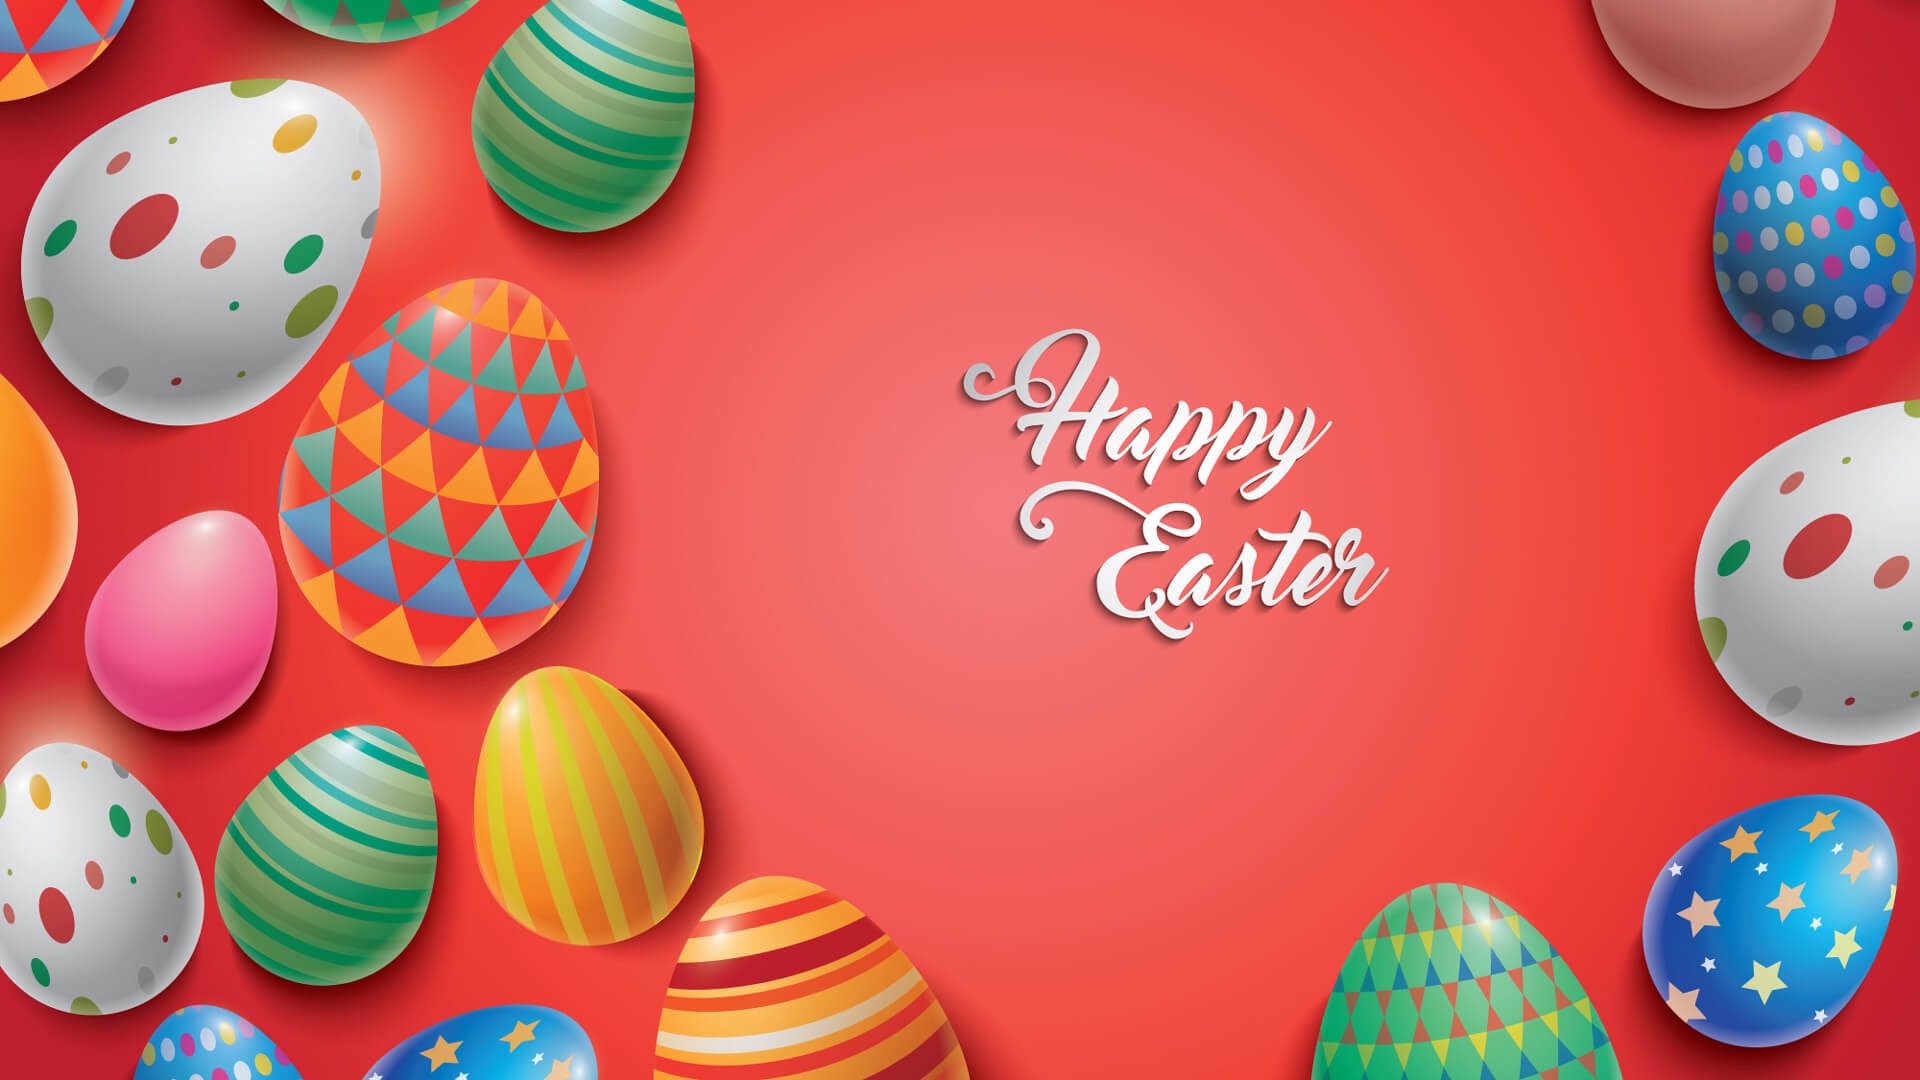 happy-easter-2019-rwcl